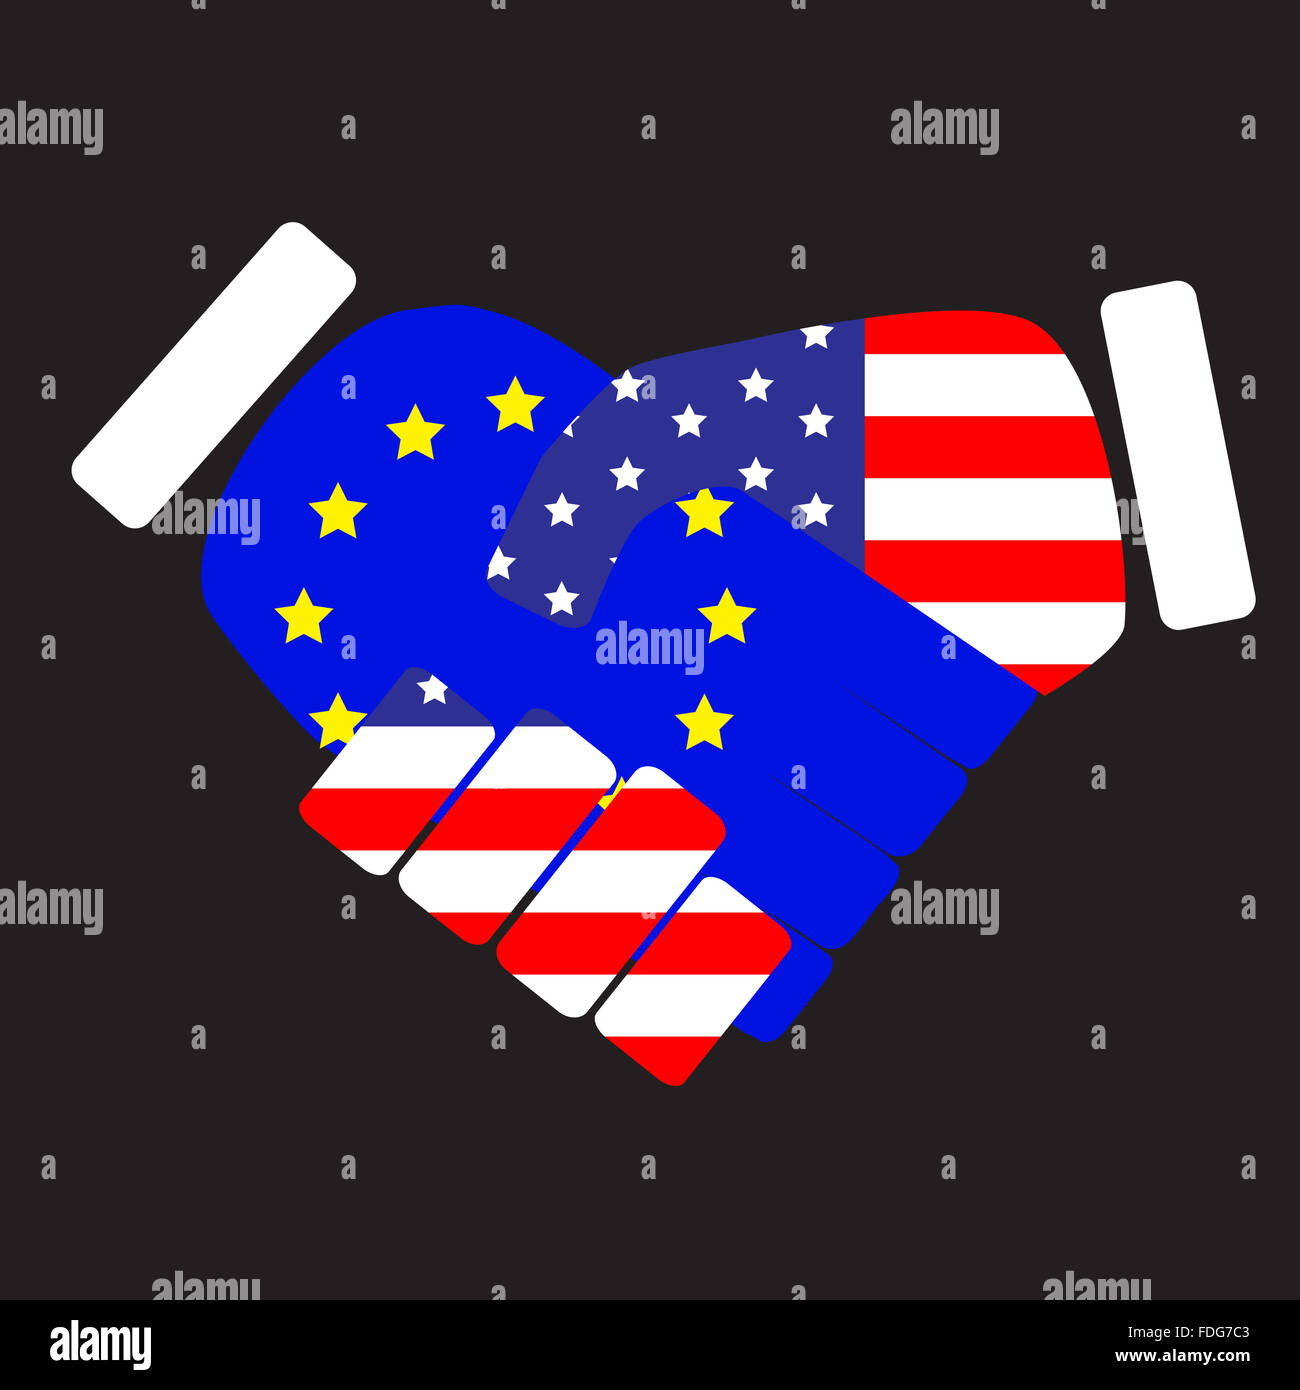 European dating sign in usa